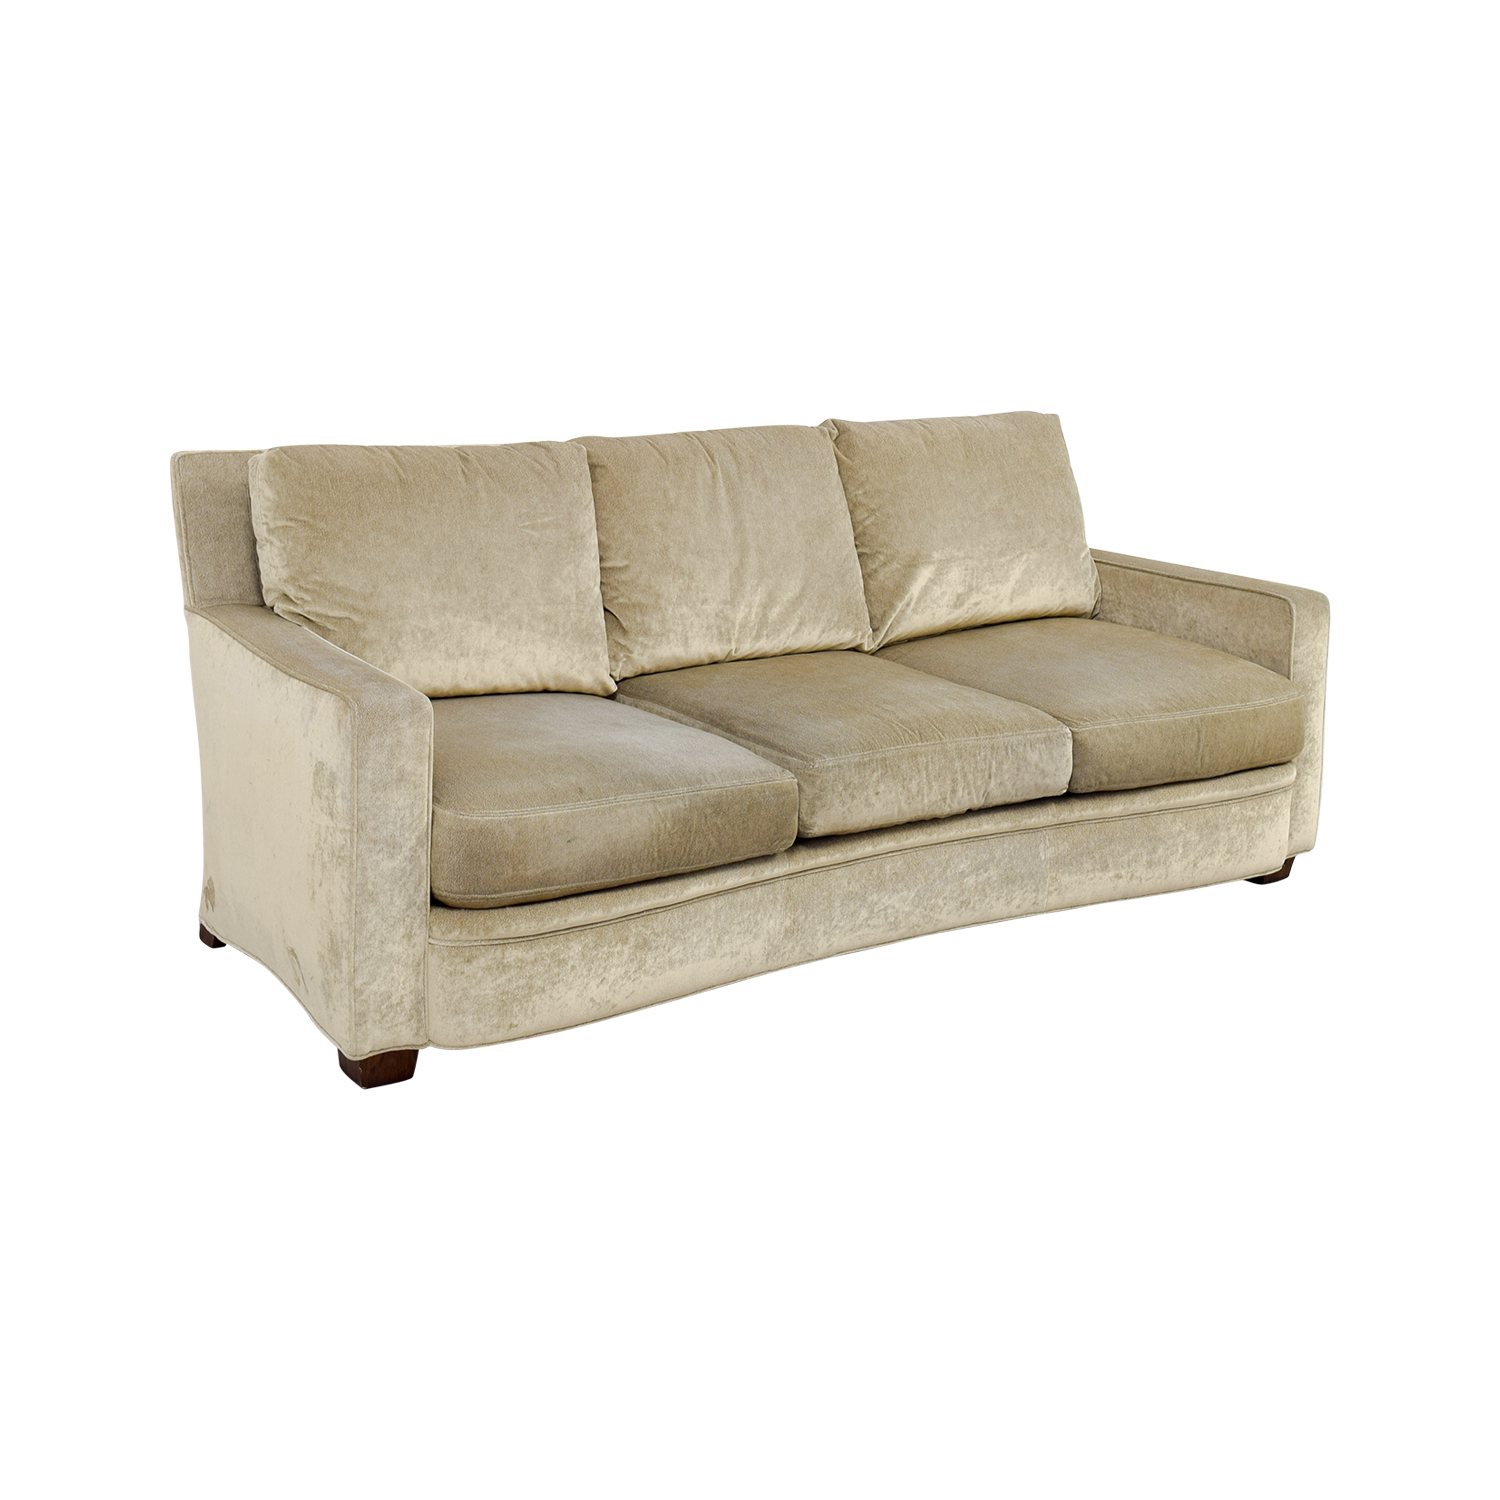 buy Kravit Furniture Beige Three-Cushion Curved Sofa Kravit Furniture Sofas